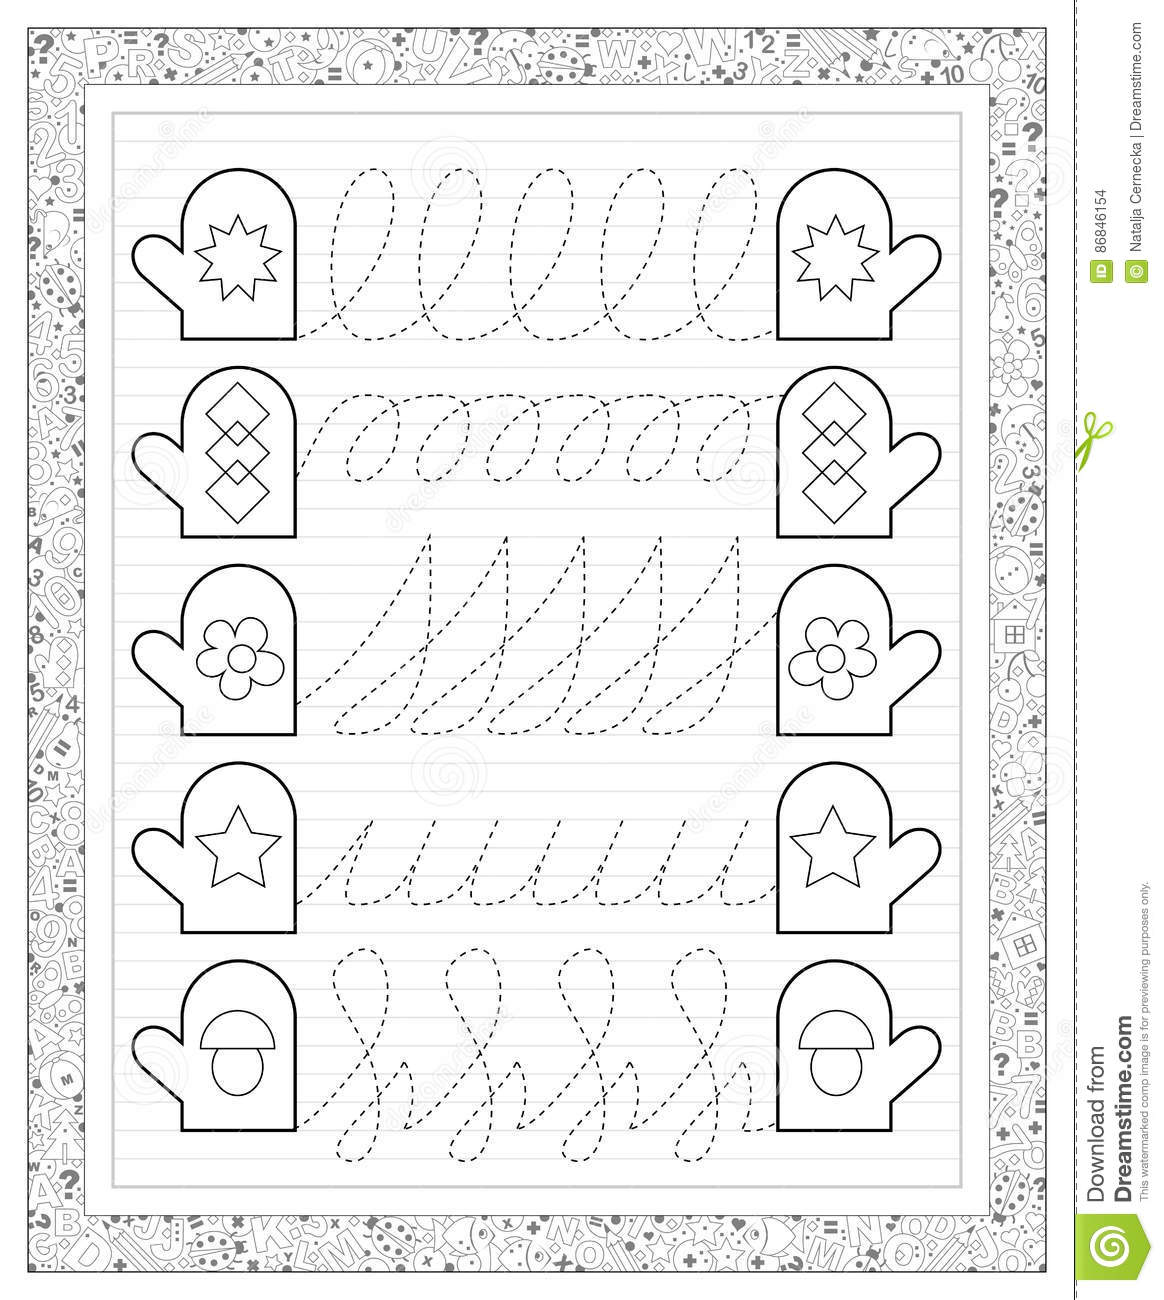 Black And White Worksheet In Line With Exercises For Little Children Need To Draw The Lines